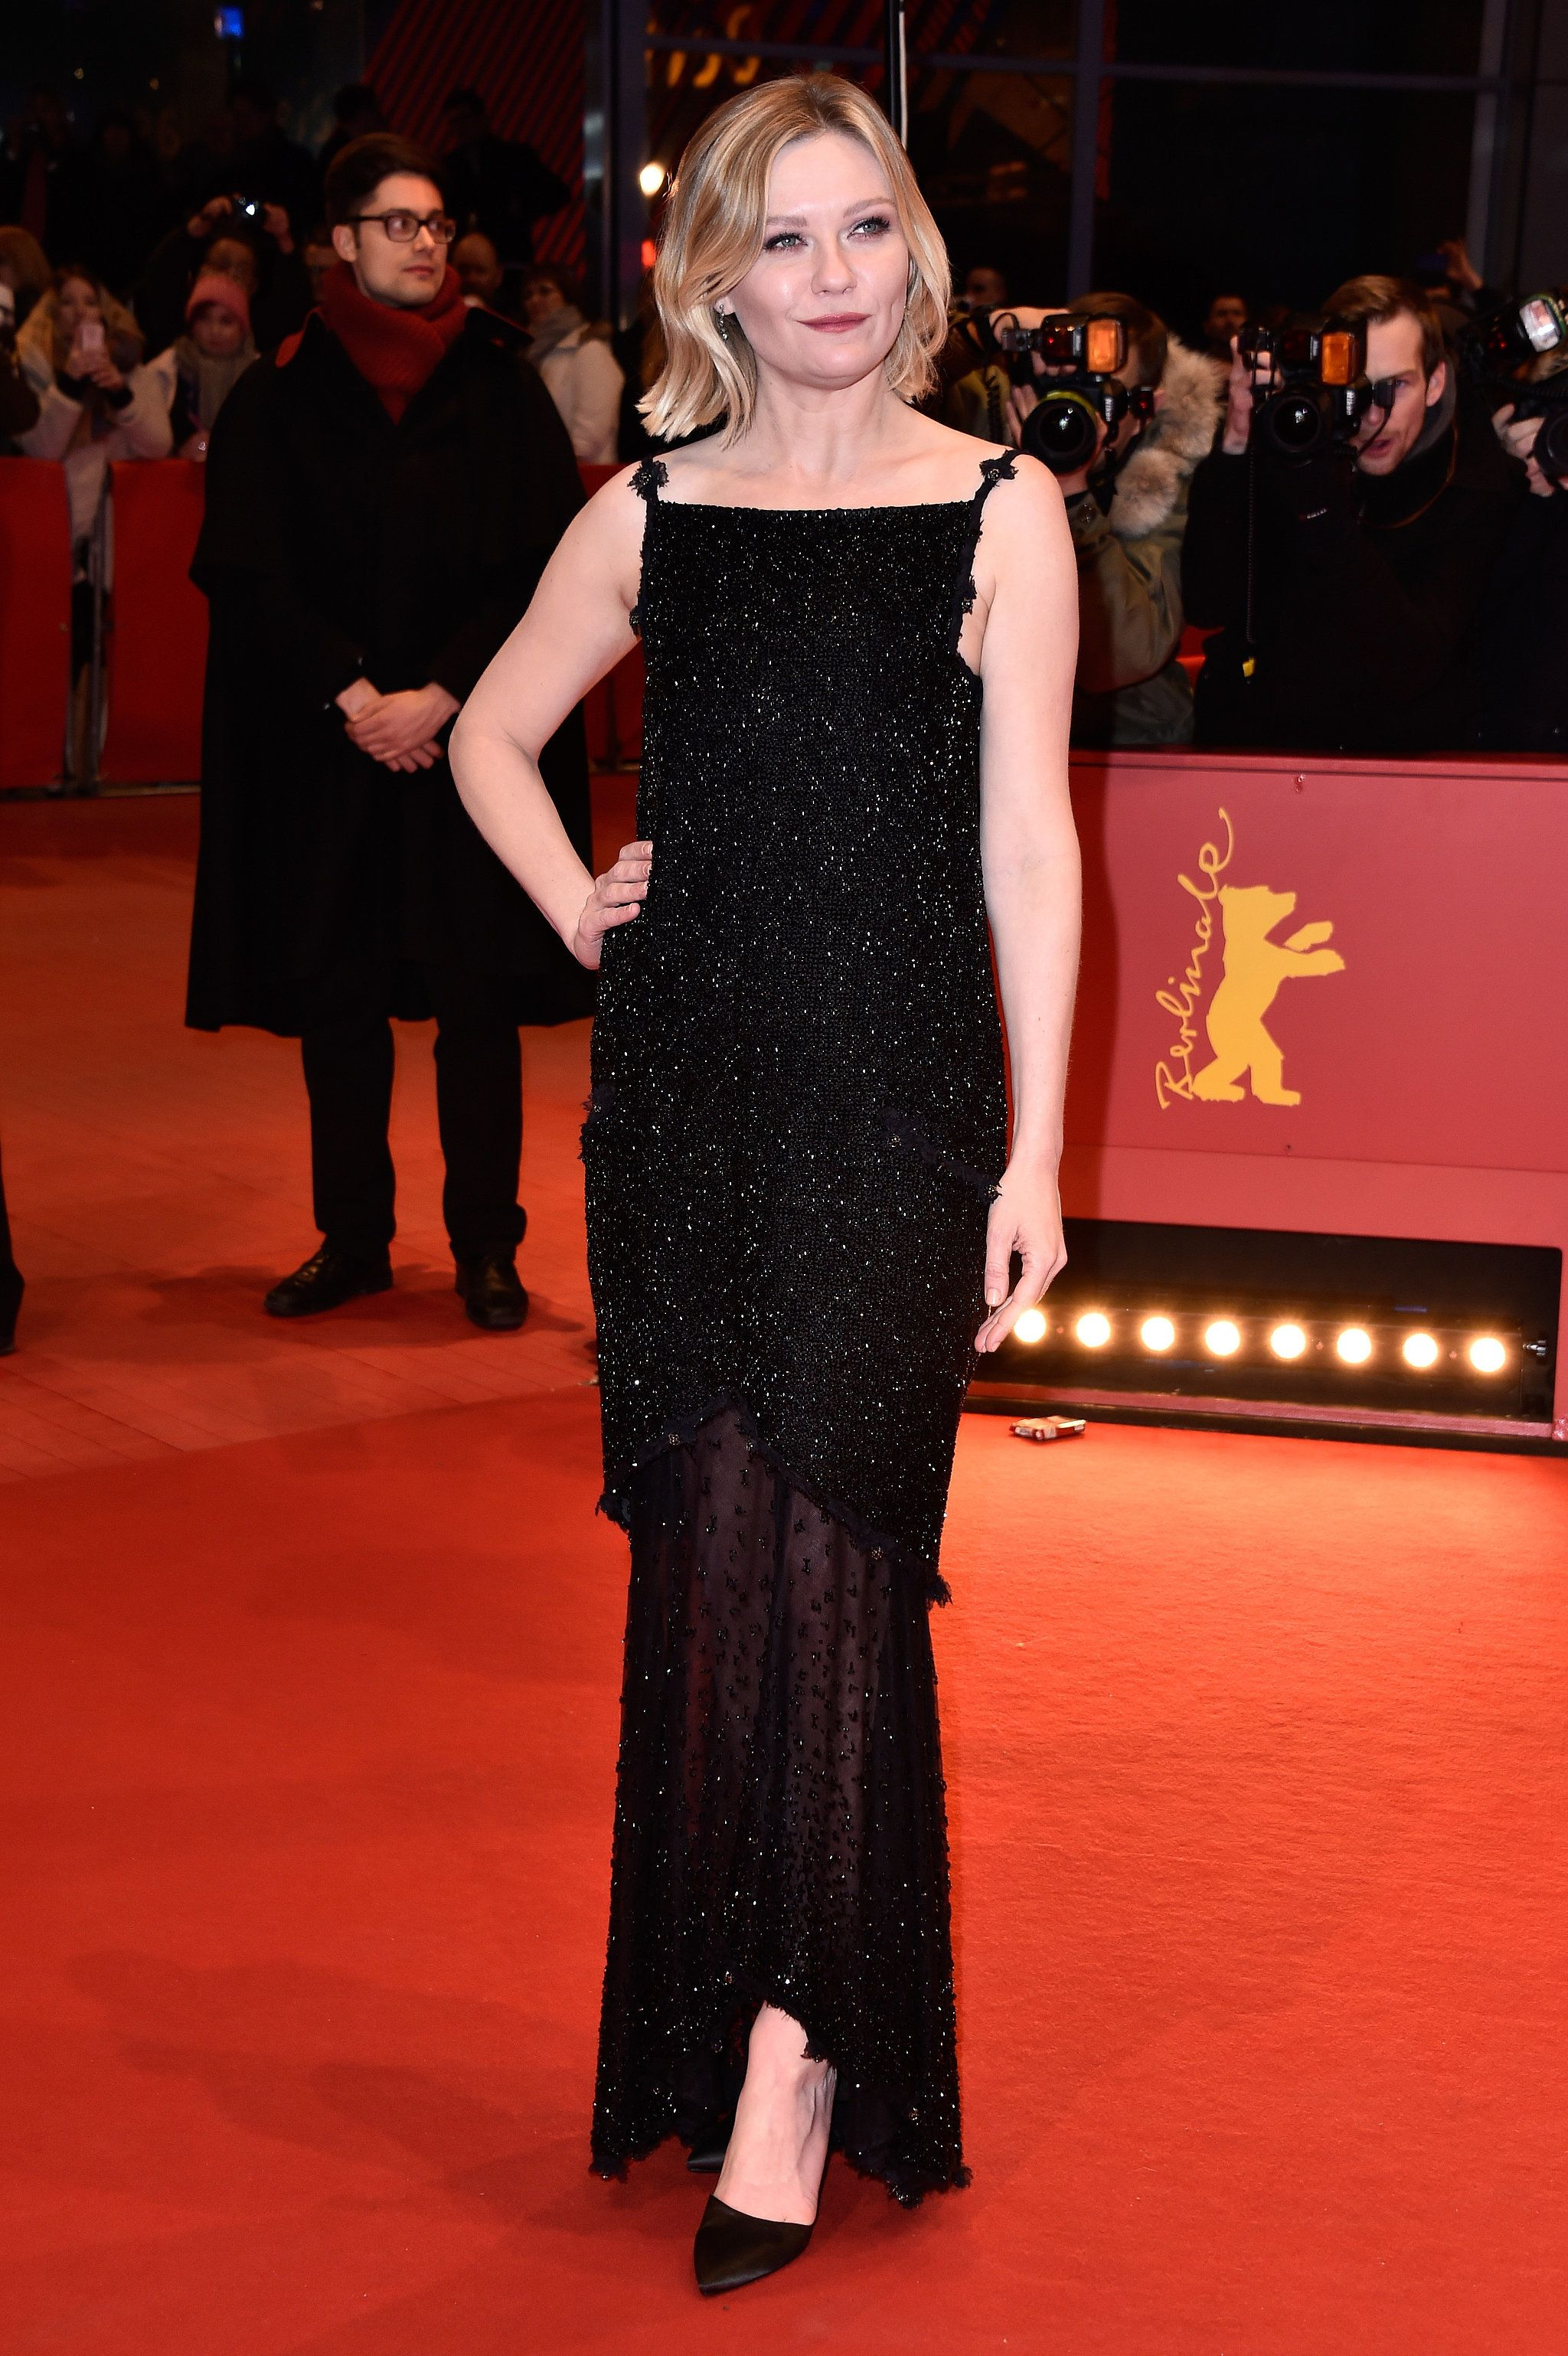 Kirsten Dunst Has The Glam Girl Moment That You Never Saw Coming Black Sparkly Dress Kirsten Dunst Dresses